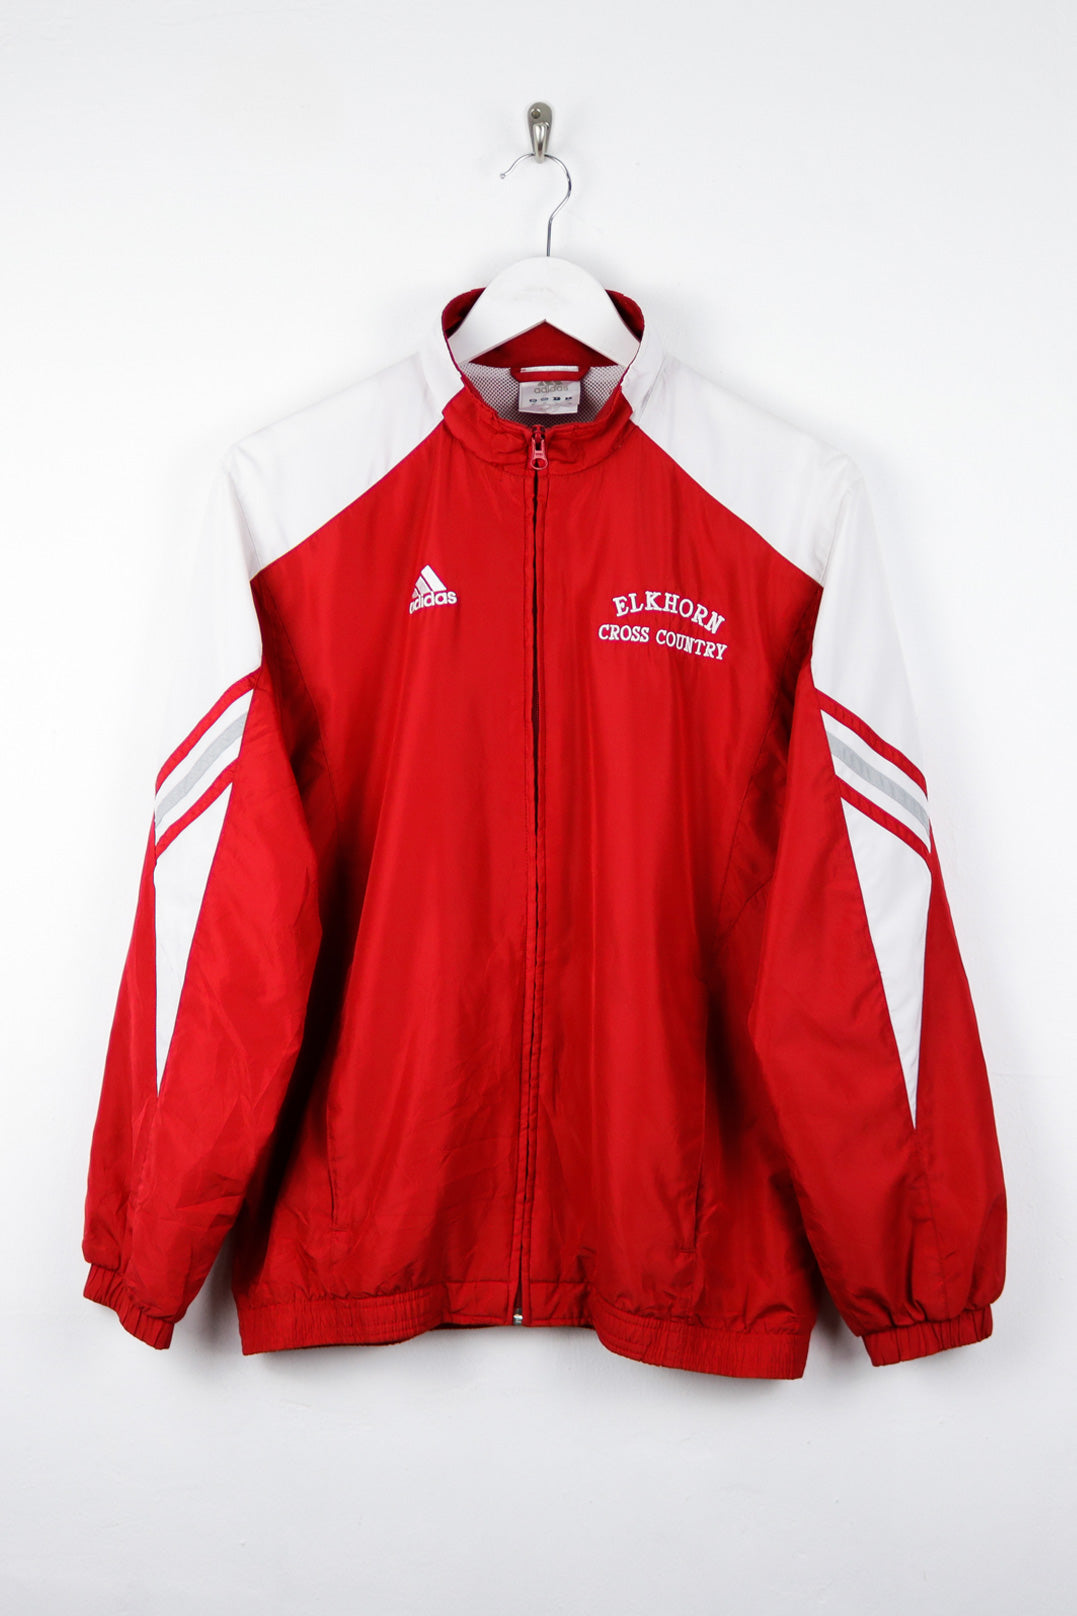 Adidas Elkhorn Cross Country